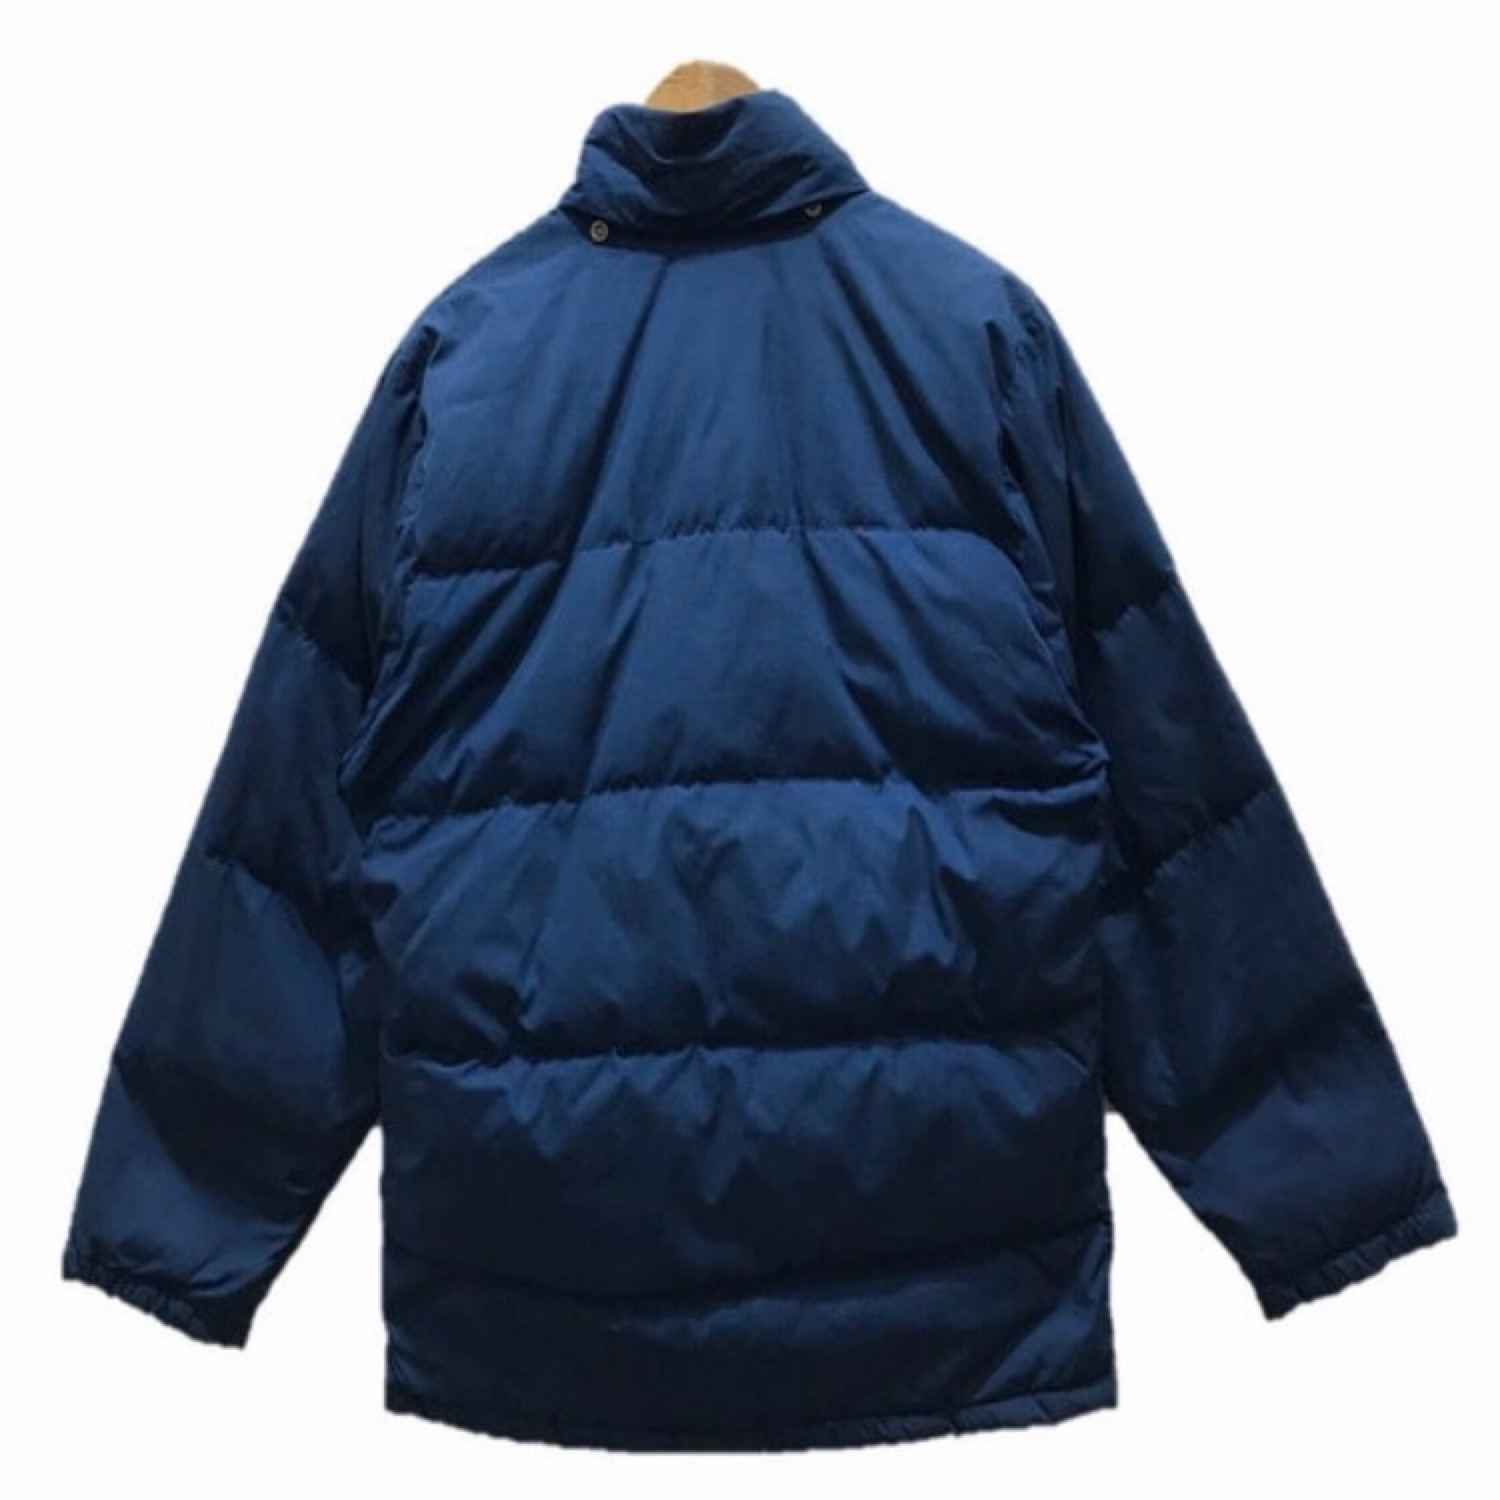 Vintage The North Face Puffer Down Jacket